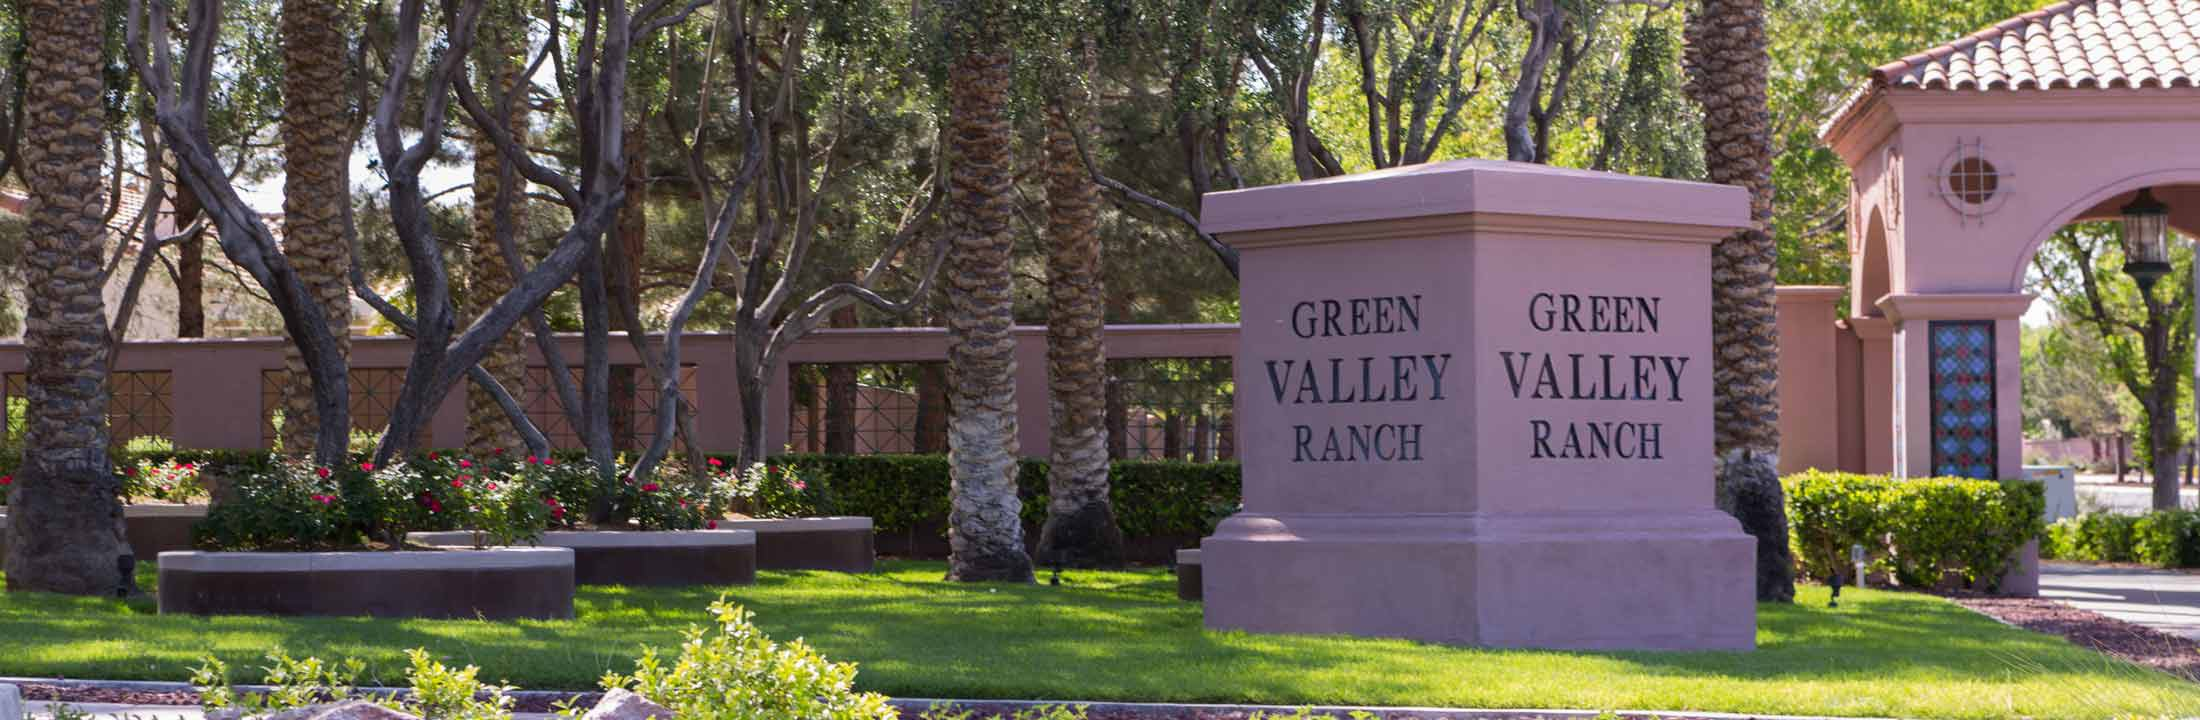 green-valley-south-homes-sale-henderson